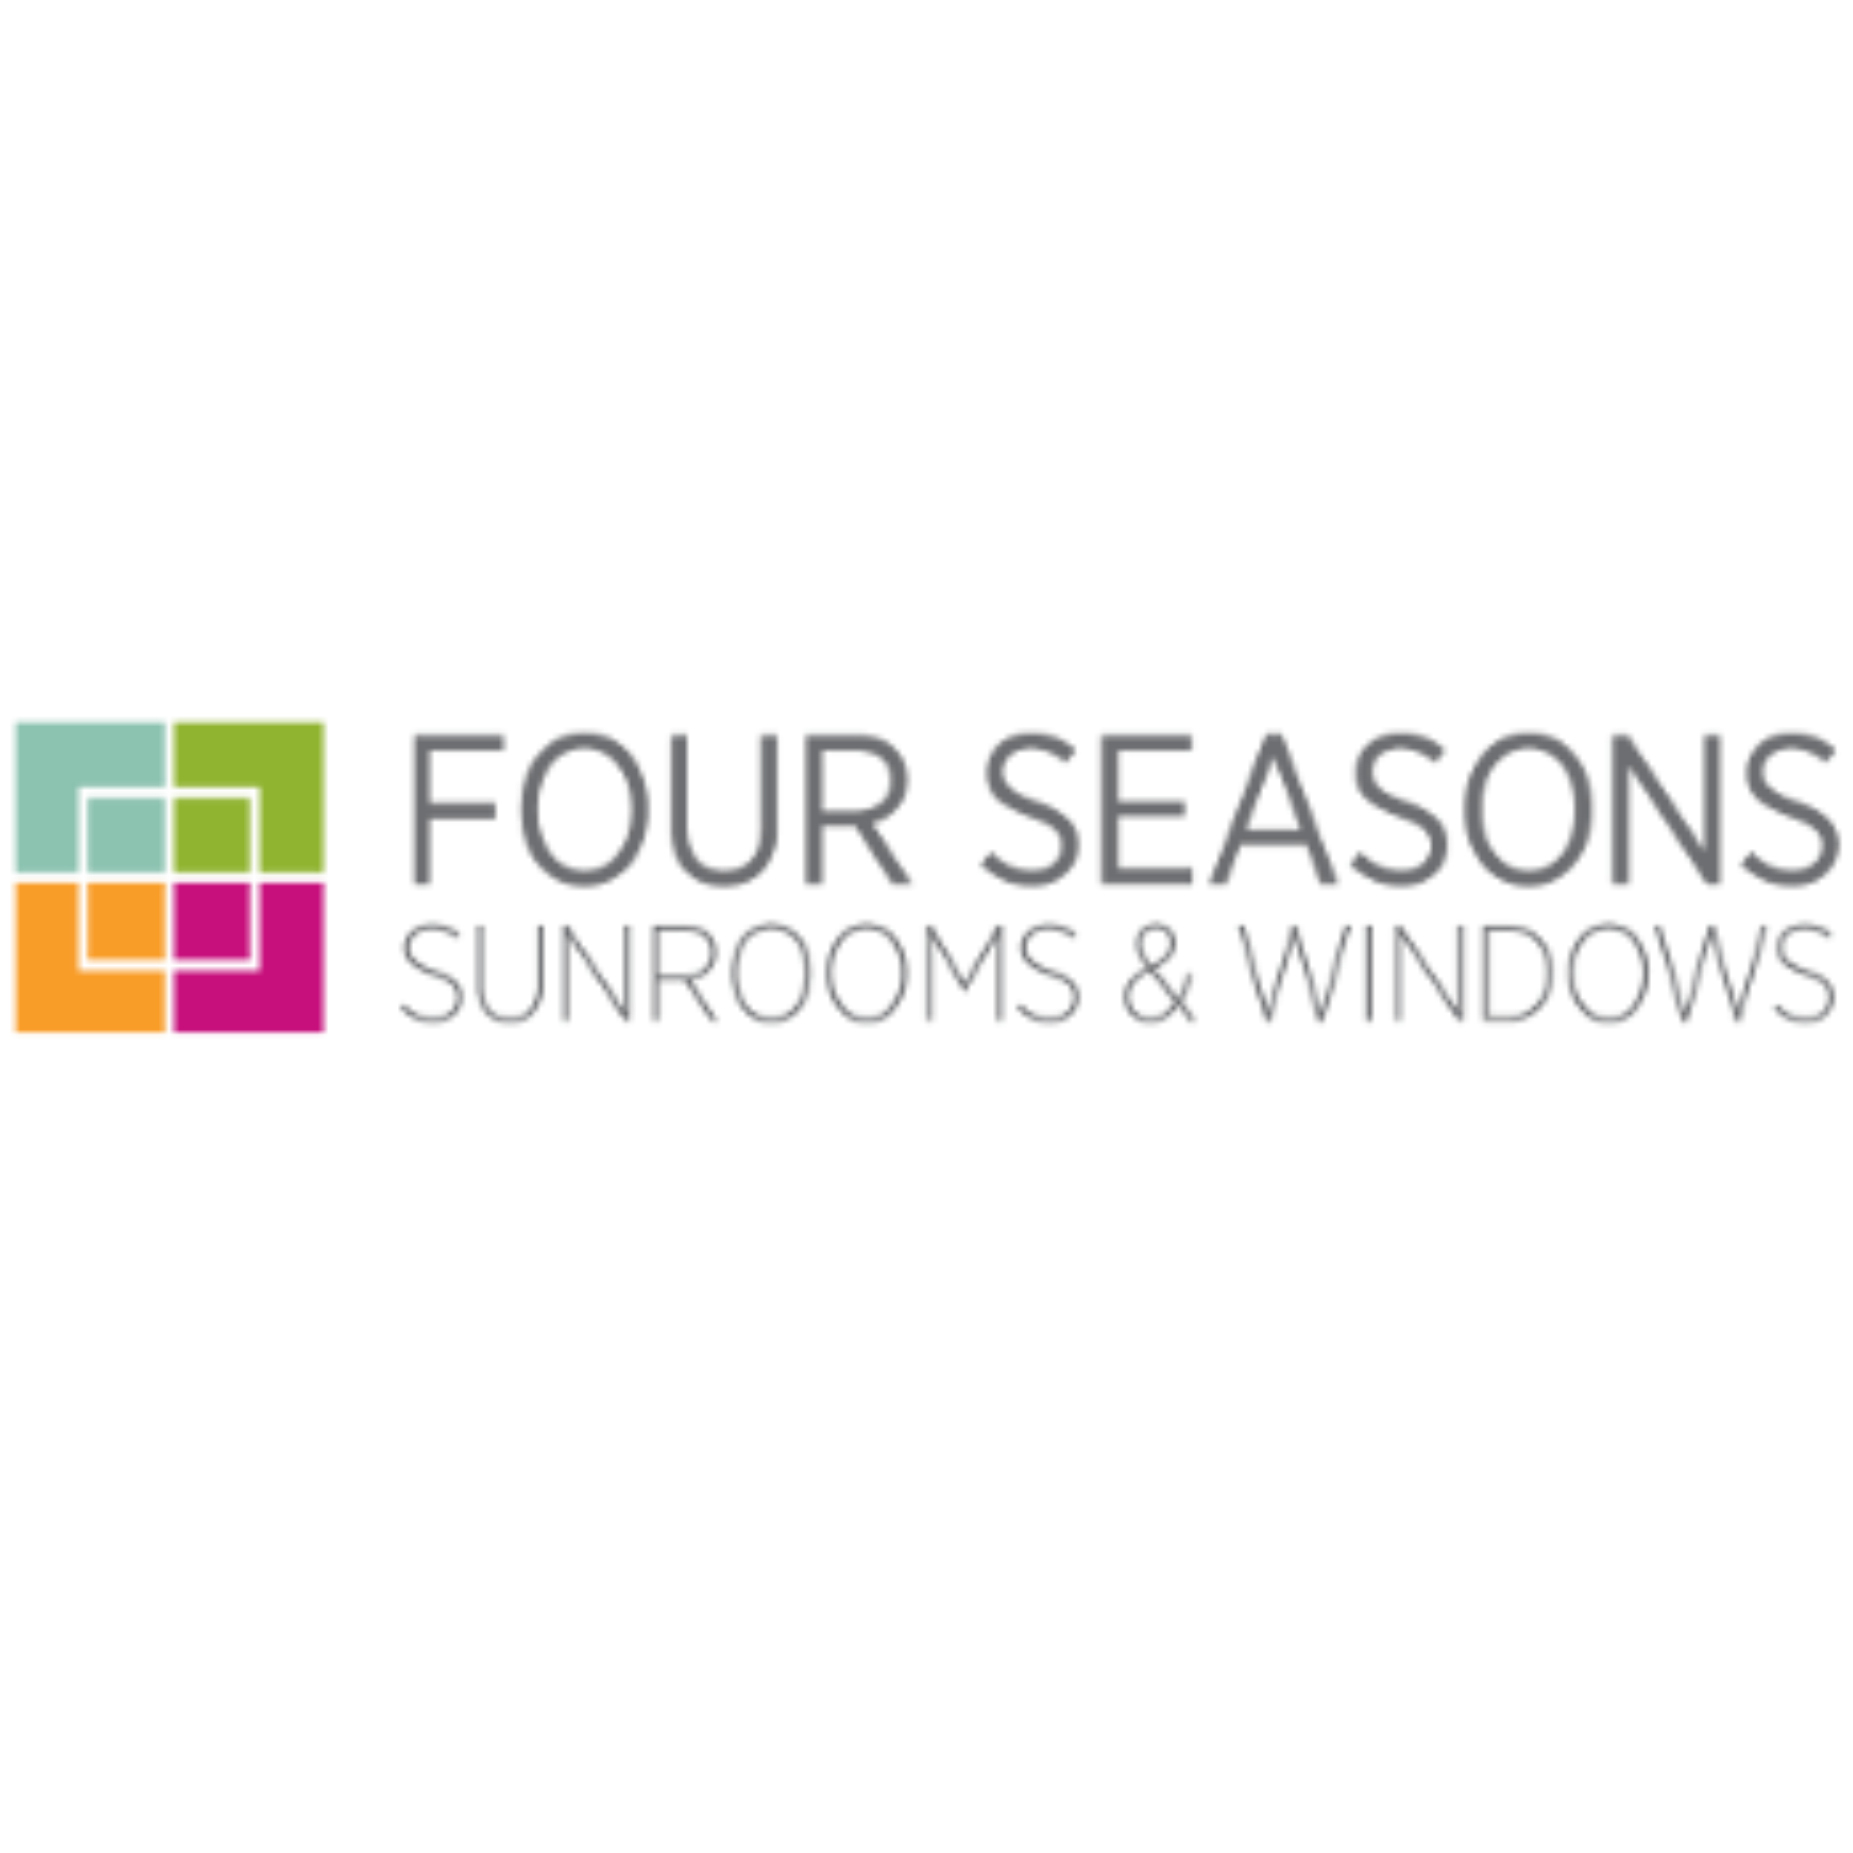 Four Seasons Nursery Coupons & Deals Treat yourself to huge savings with Four Seasons Nursery Promo Codes: 2 promo codes, and 12 deals for December